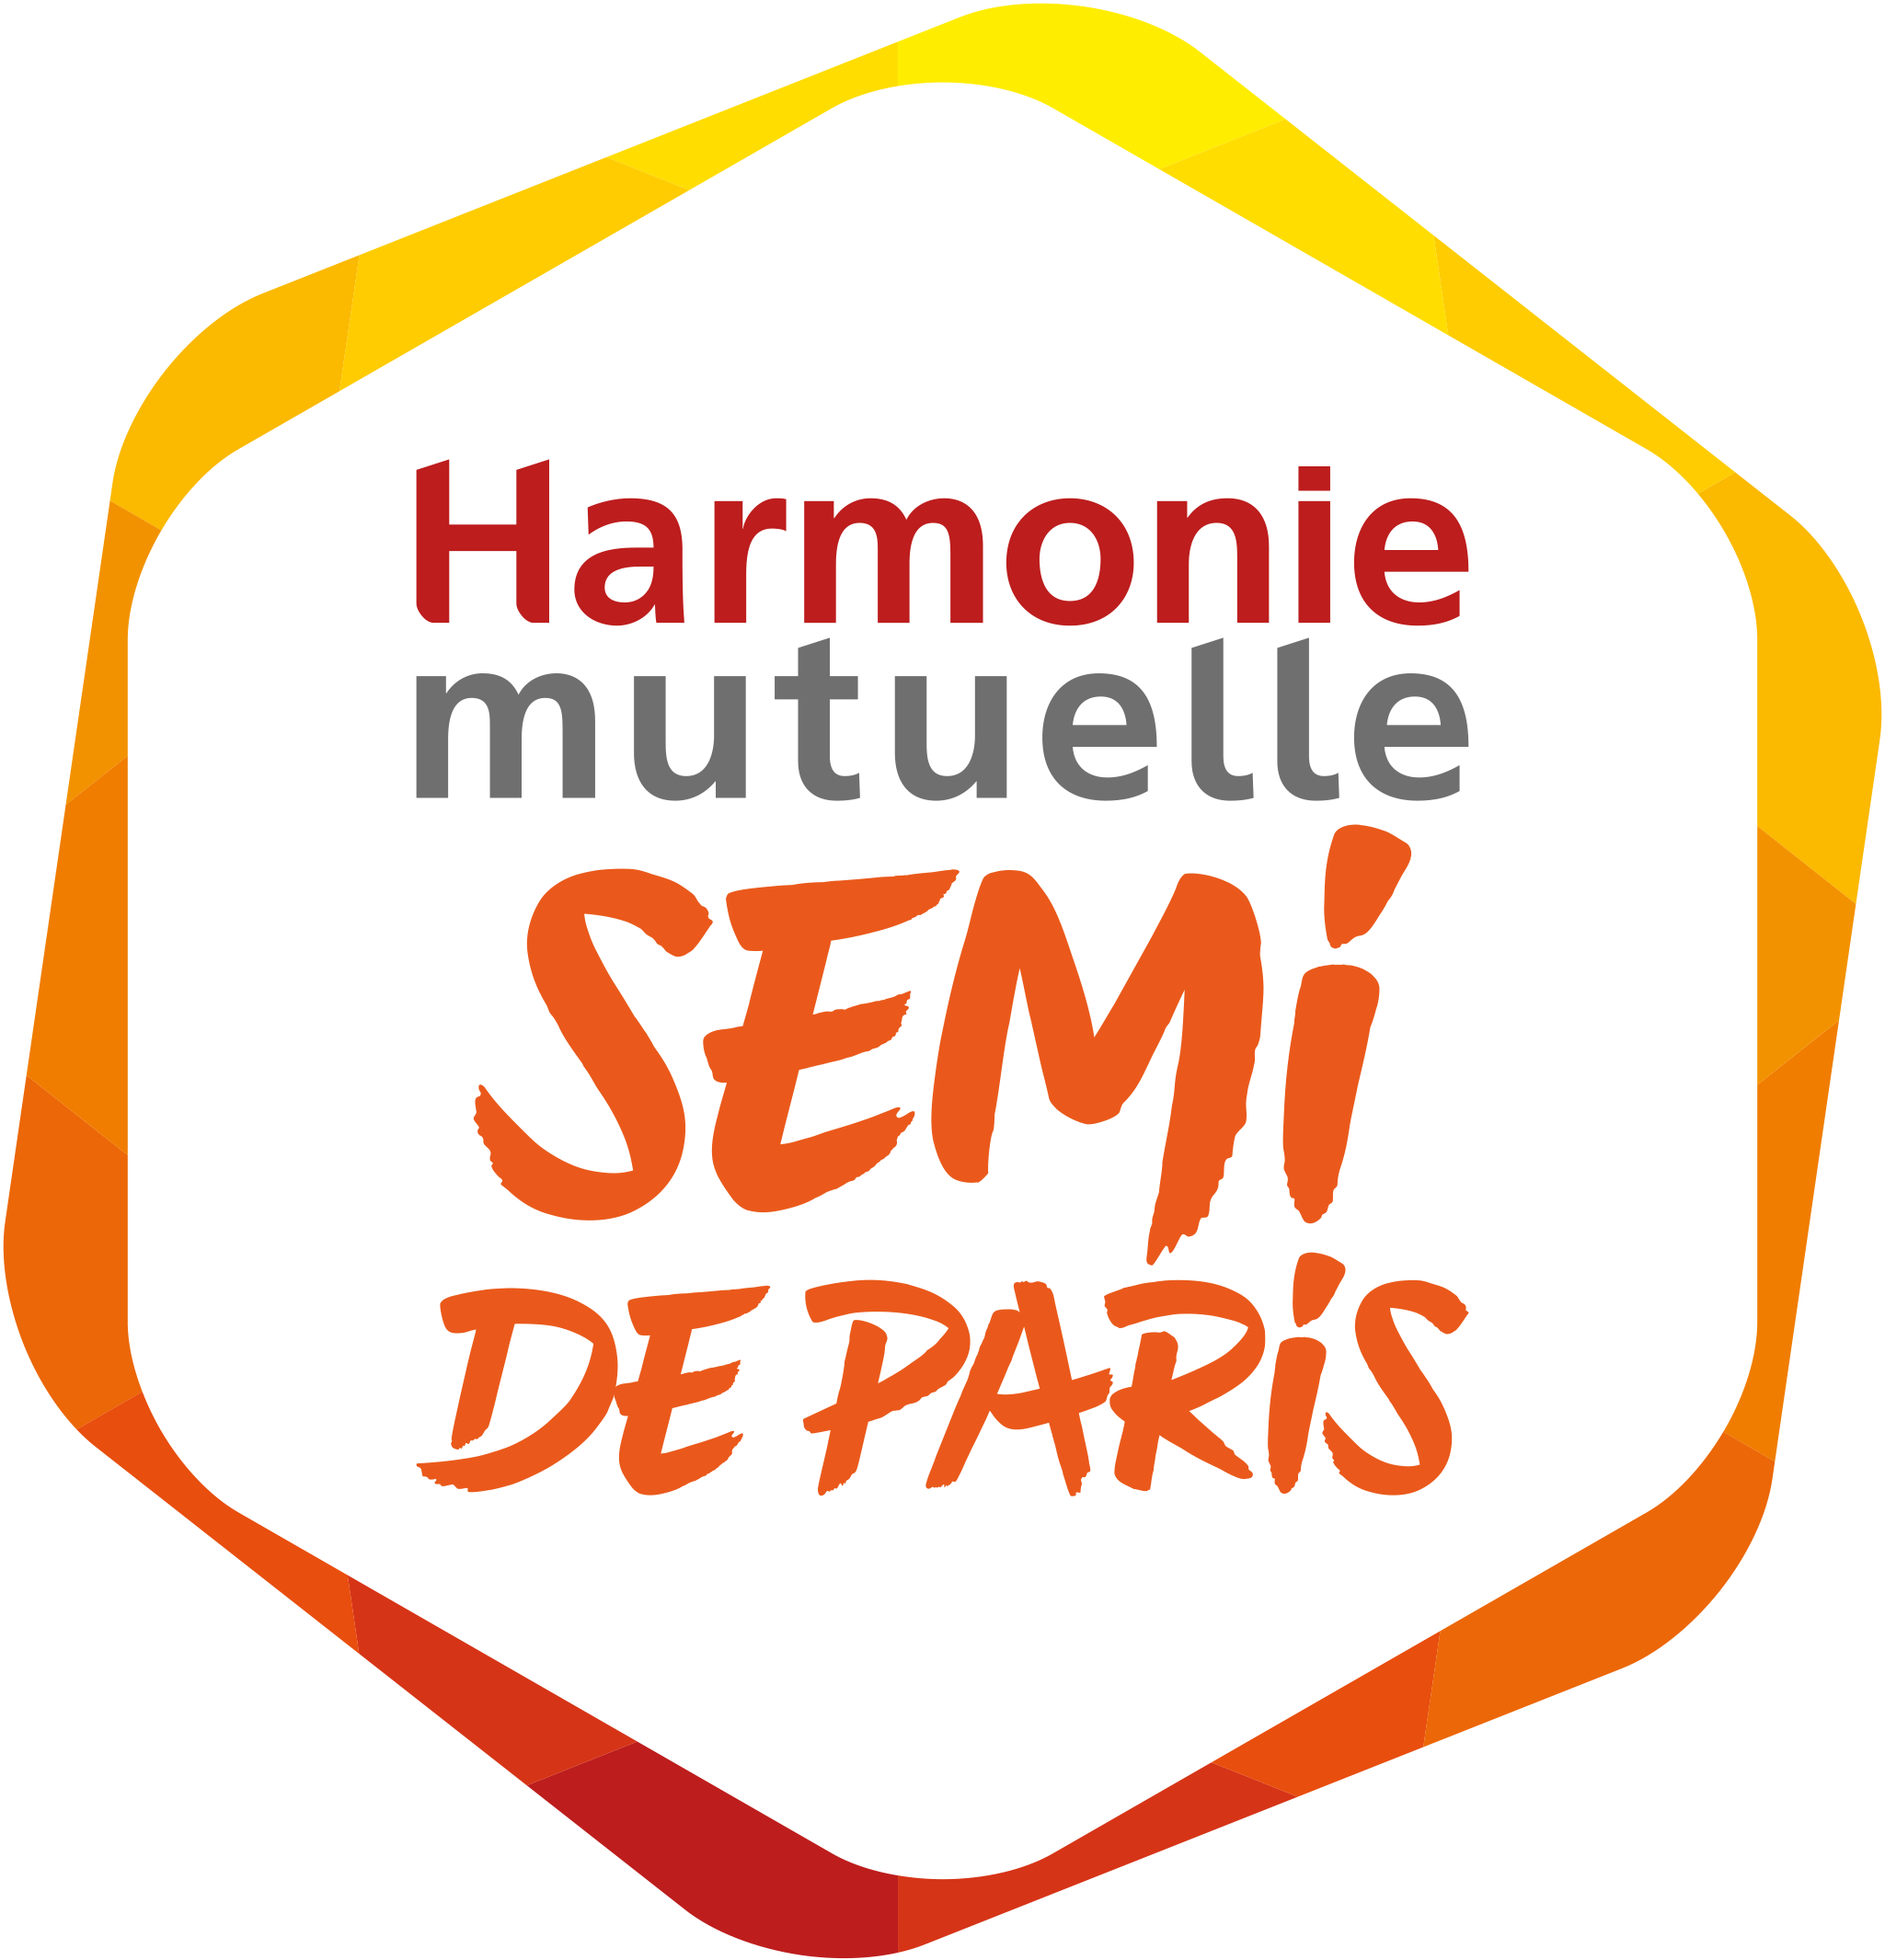 https://www.harmoniemutuellesemideparis.com/fr/